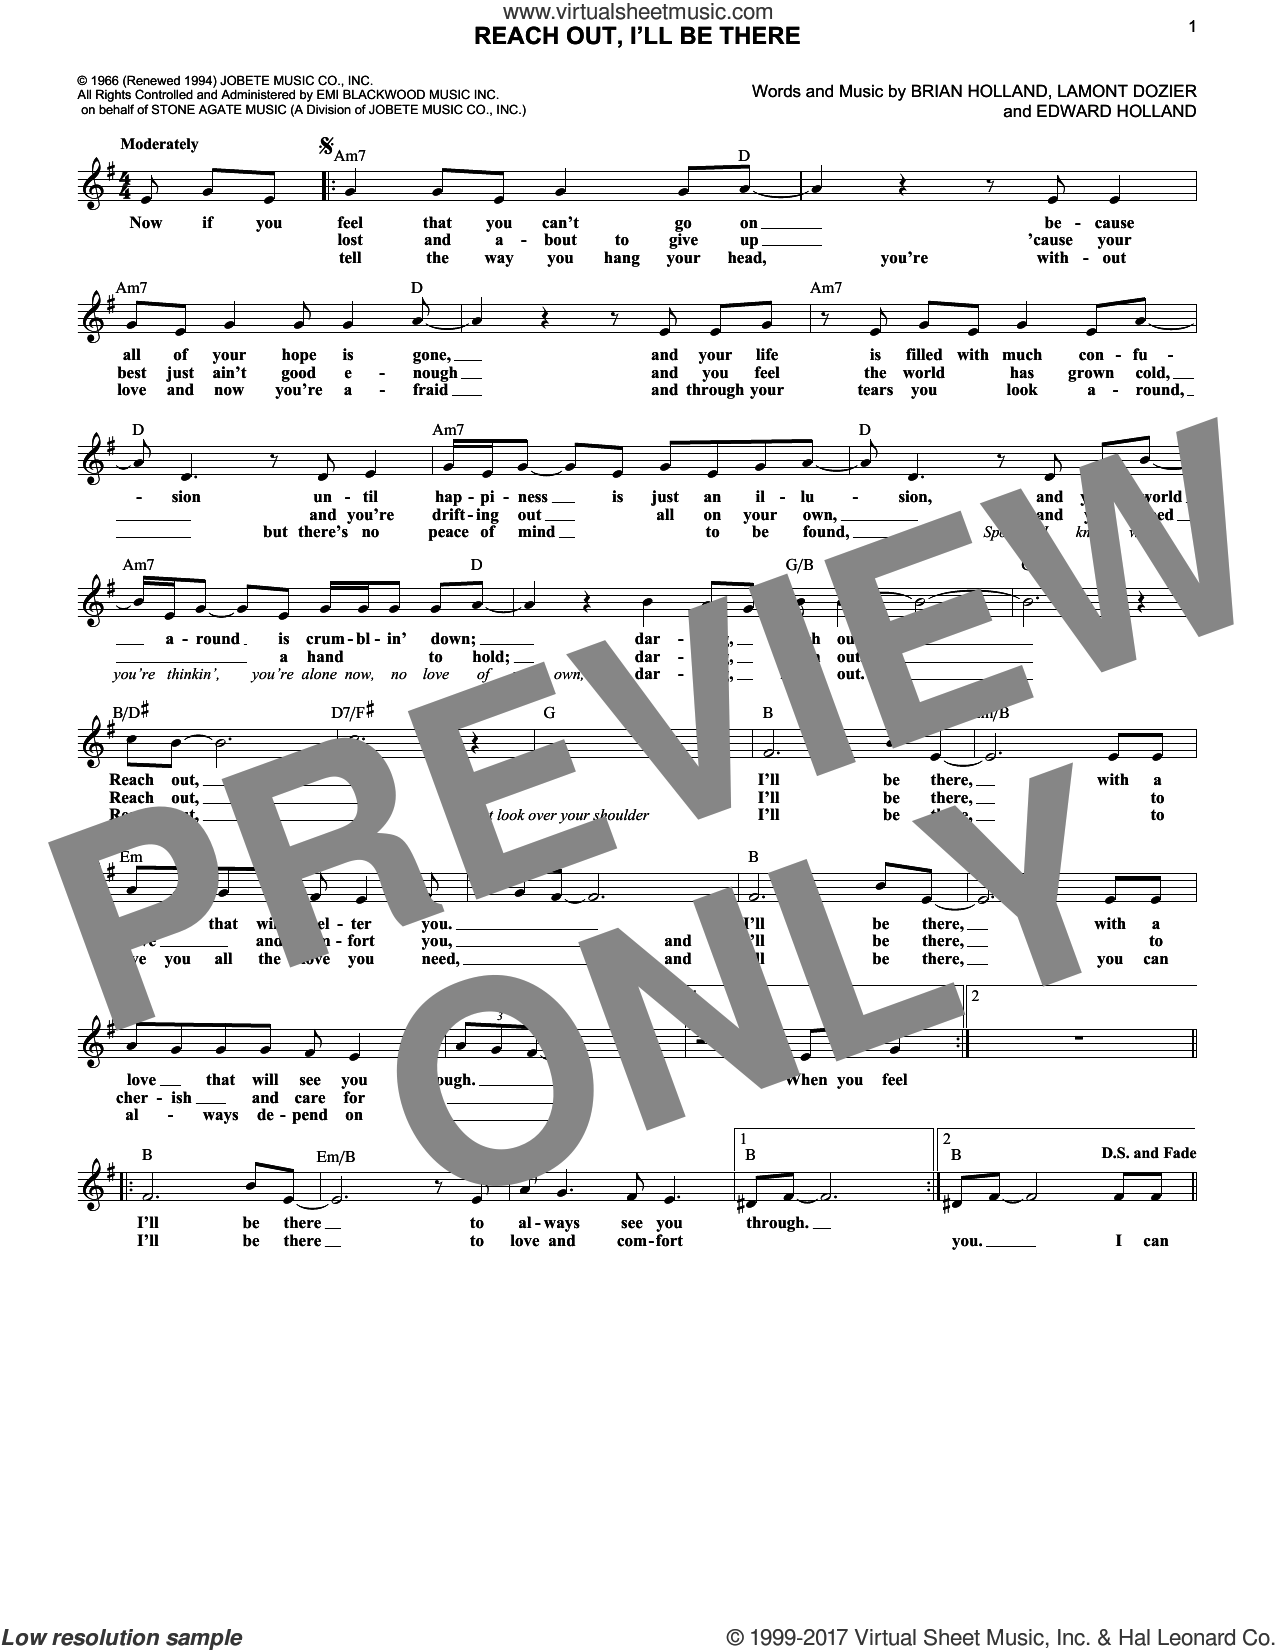 Reach Out And I'll Be There sheet music for voice and other instruments (fake book) by Lamont Dozier, Michael McDonald, The Four Tops and Brian Holland. Score Image Preview.